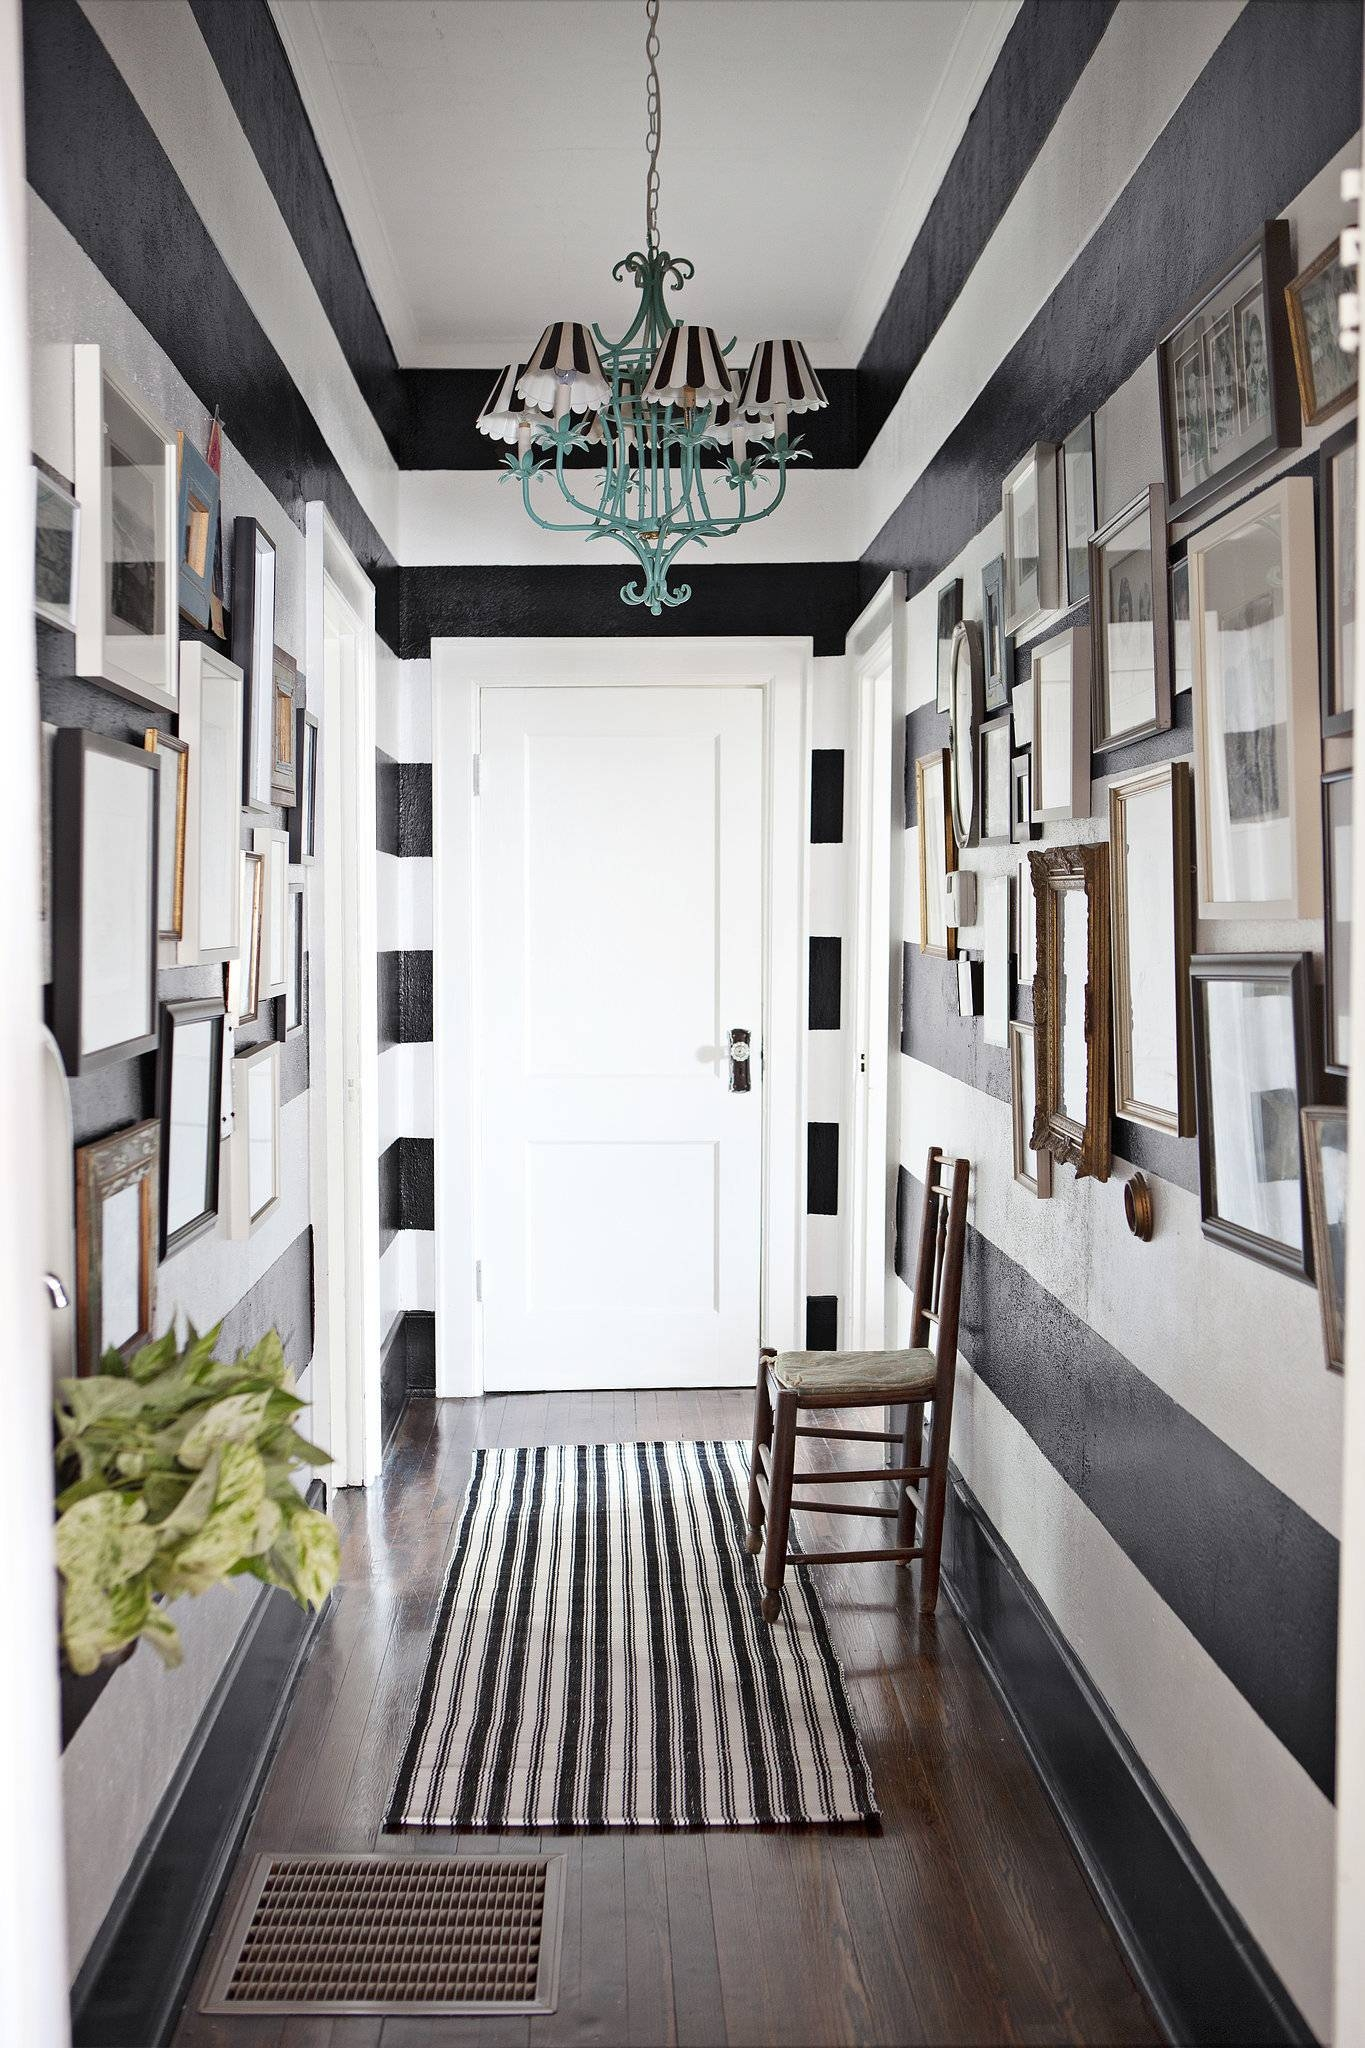 White Wooden Finish Flooring Idea Hallway Wall Art Ideas Lovely With Regard To Recent Wall Art Ideas For Hallways (View 14 of 20)